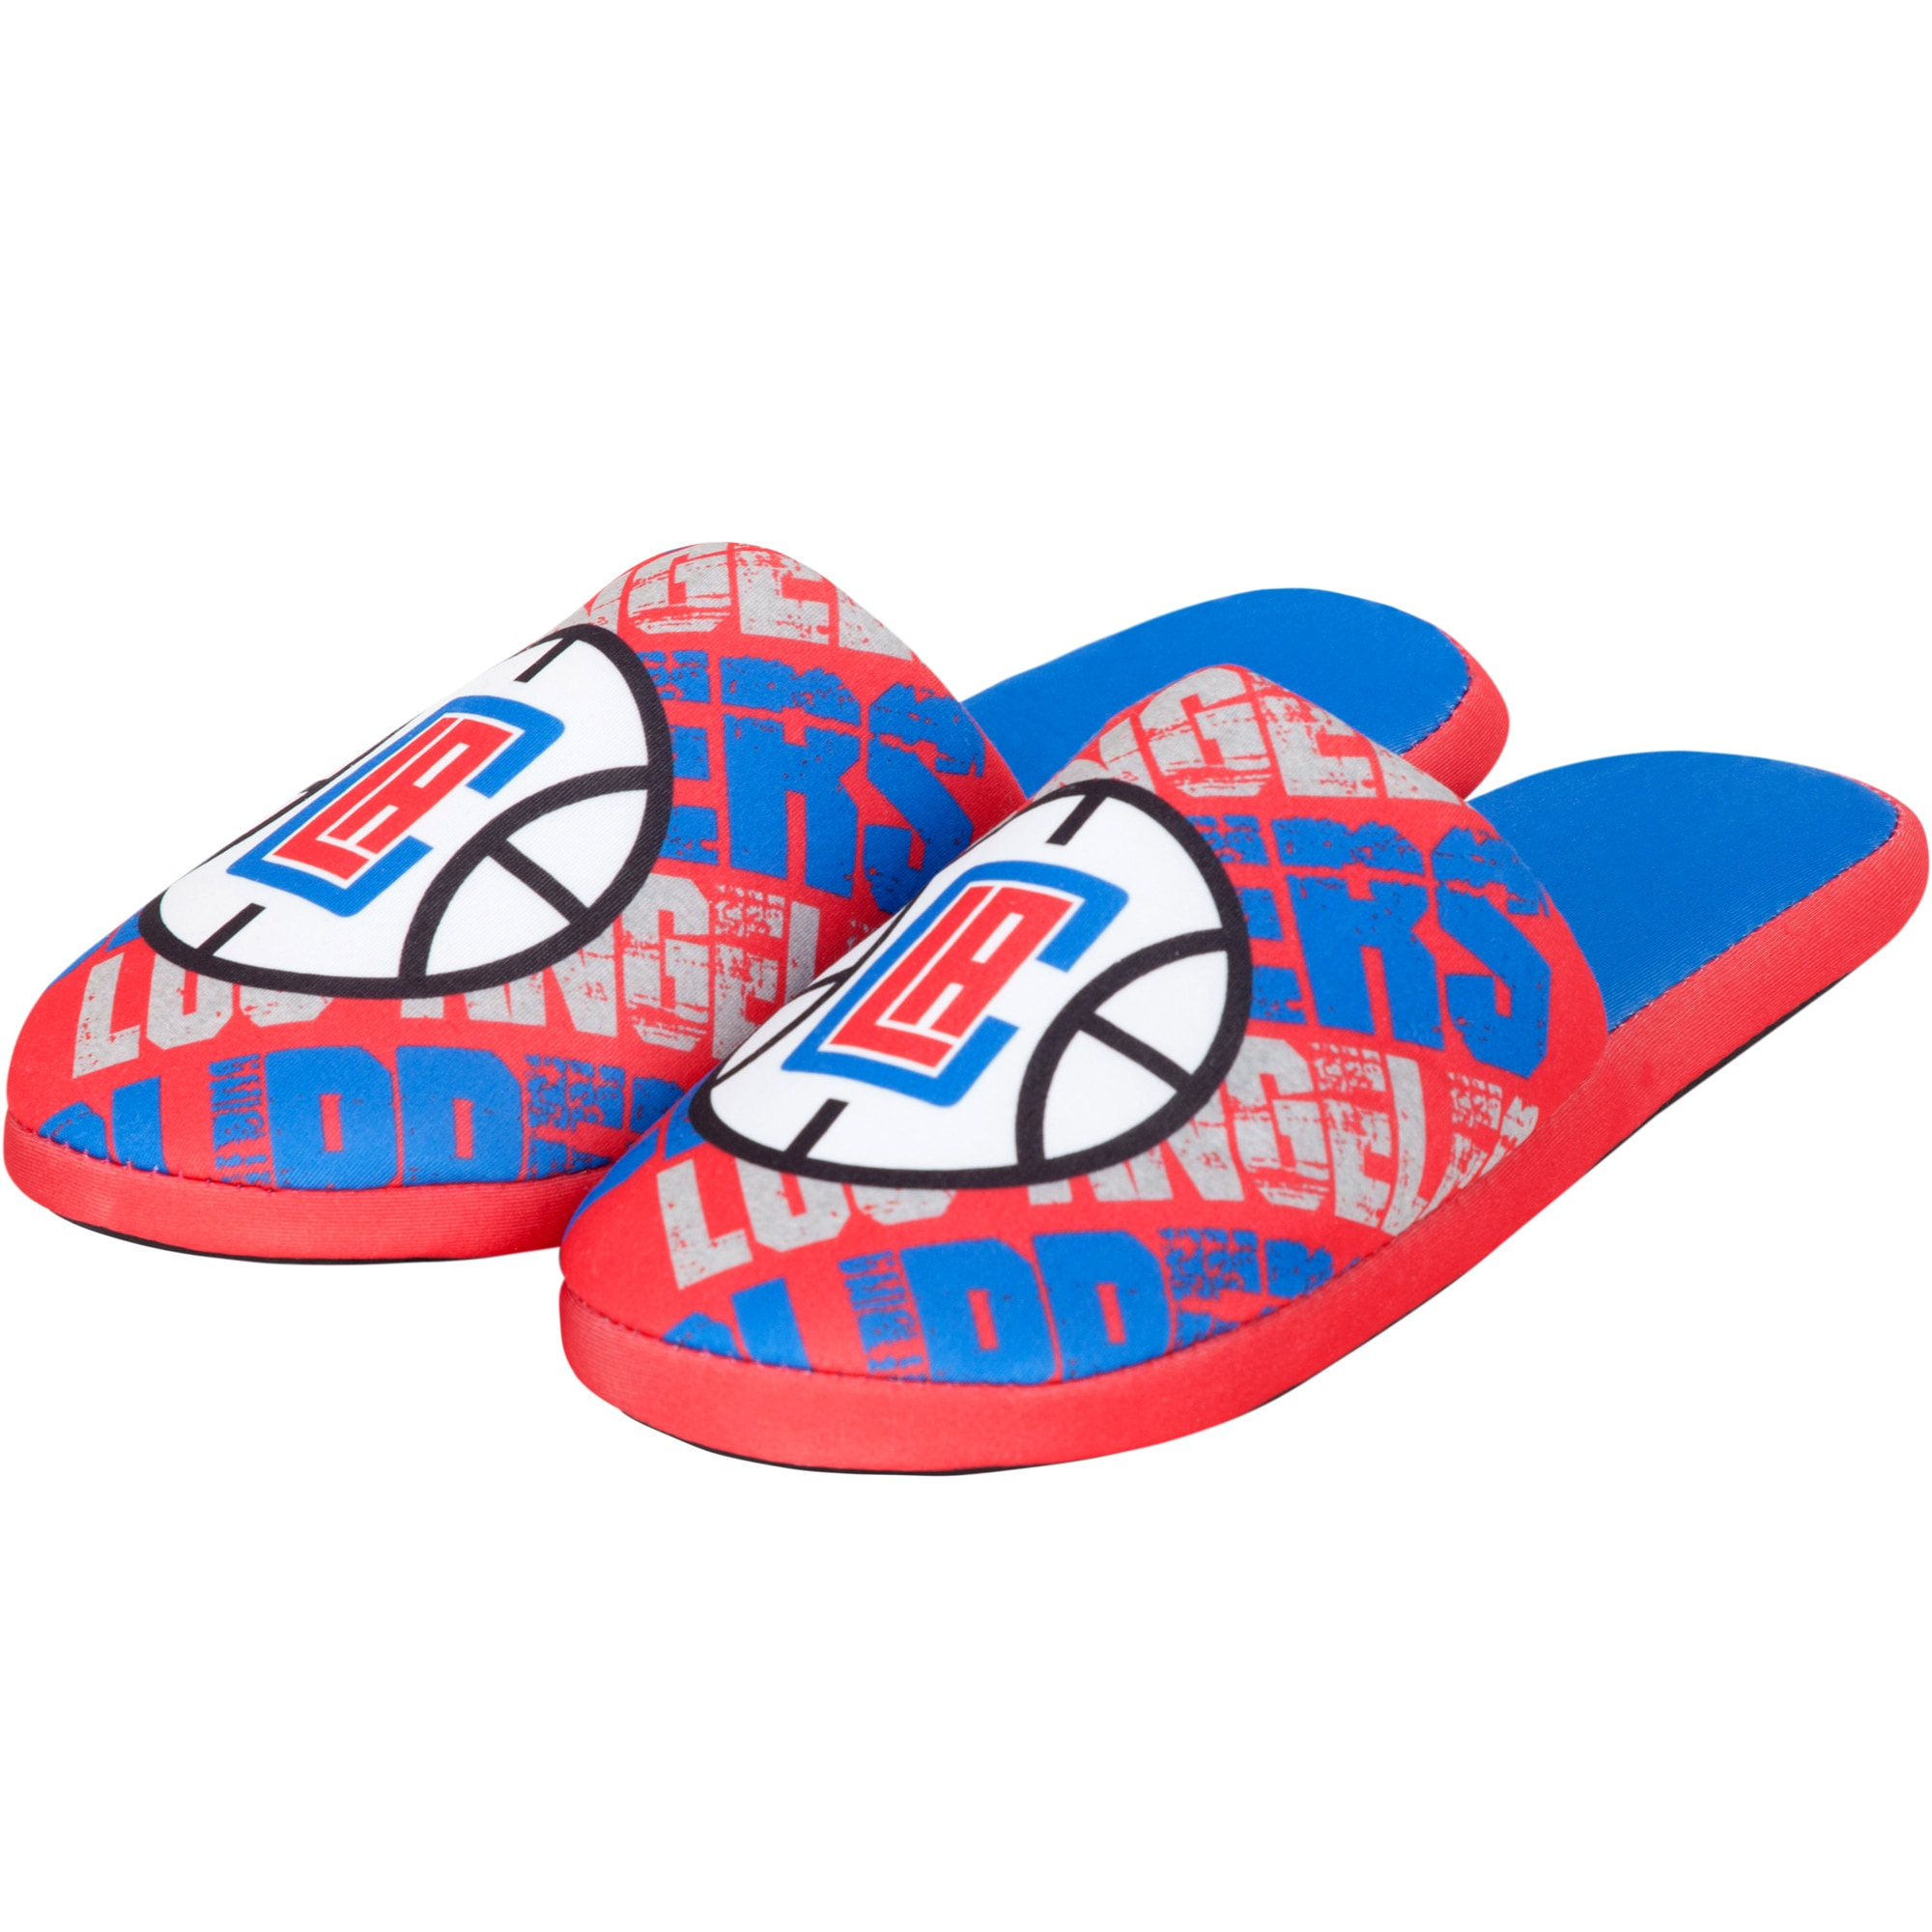 LA Clippers Digital Print Slippers - Red